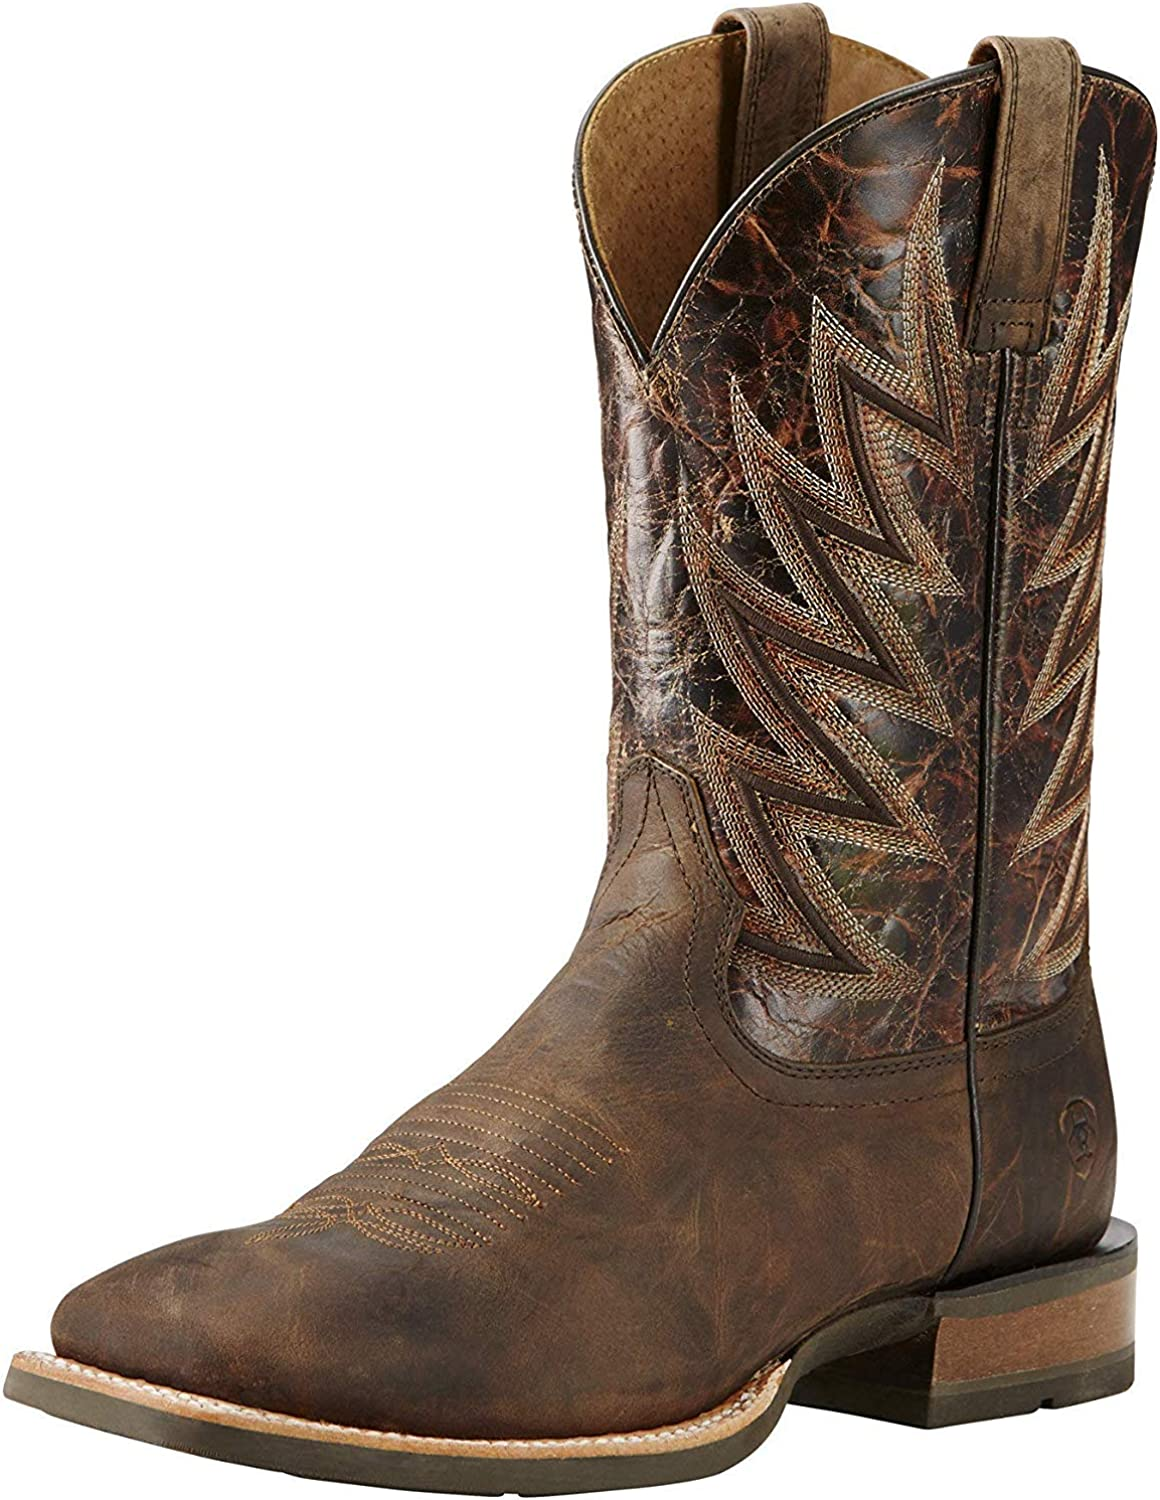 Miami Mall Ariat Men's Challenger Western Boot Cowboy Daily bargain sale